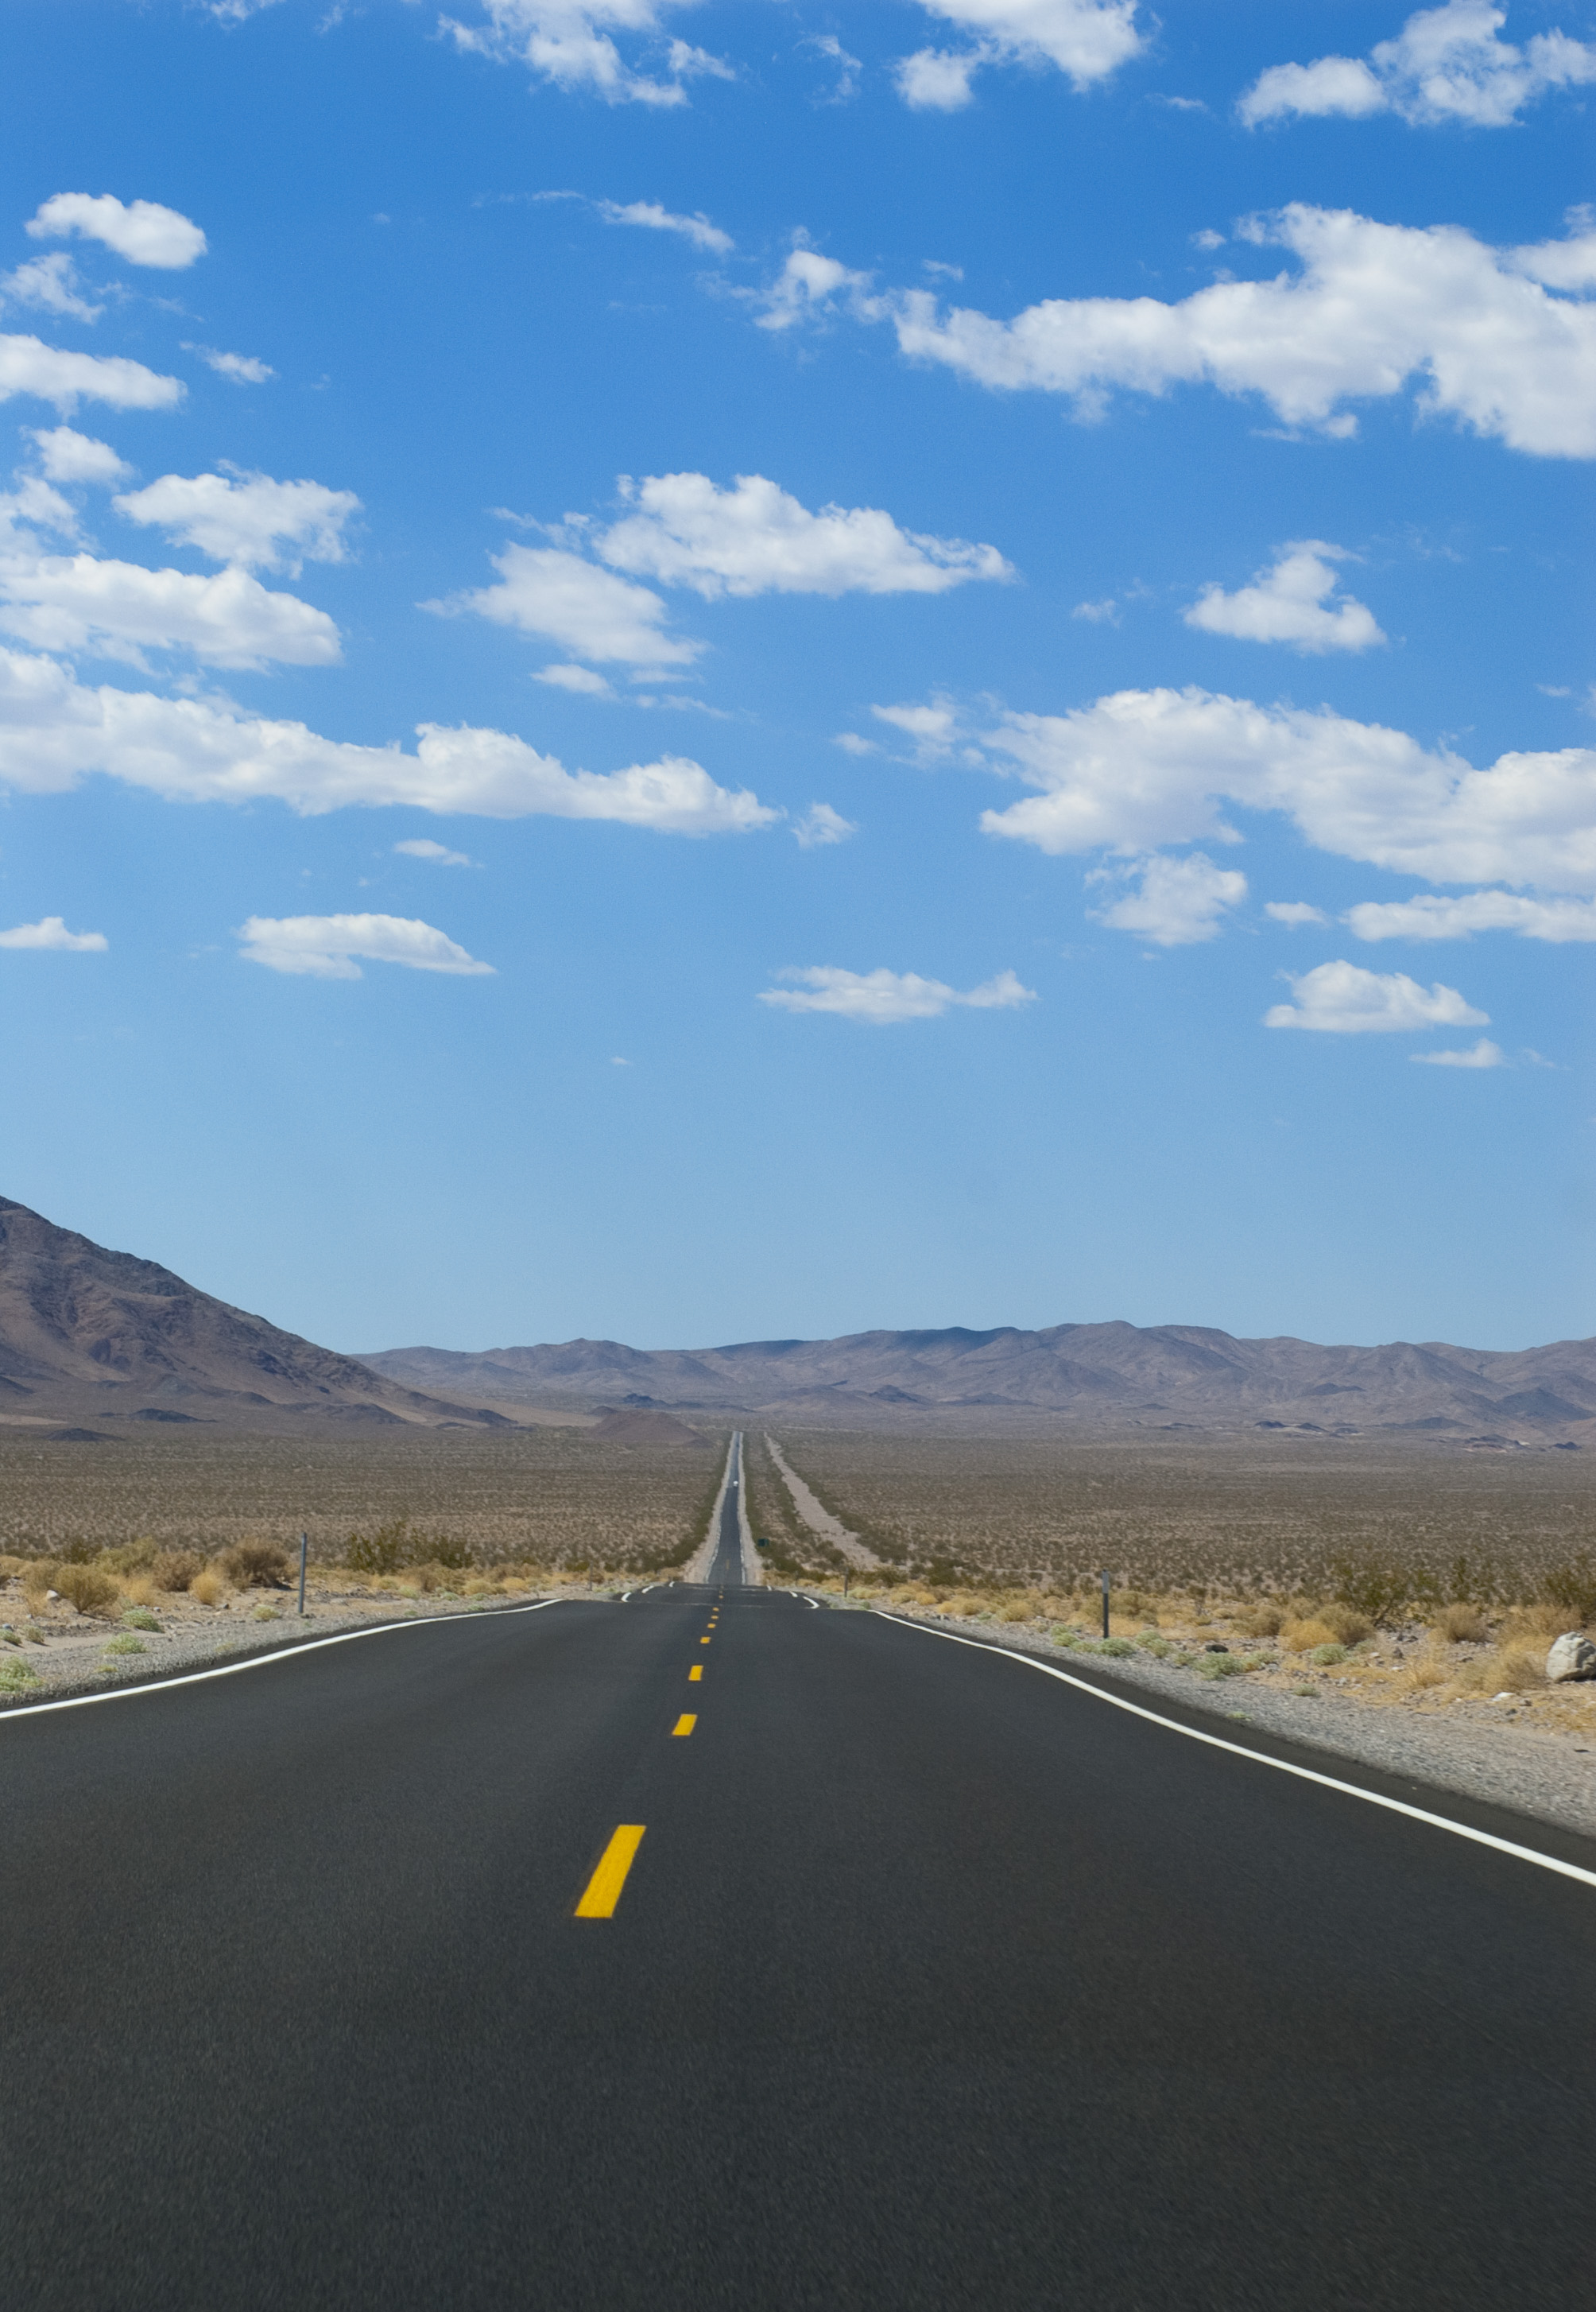 Free Stock Photo 3104-long_straight_road.jpg   freeimageslive